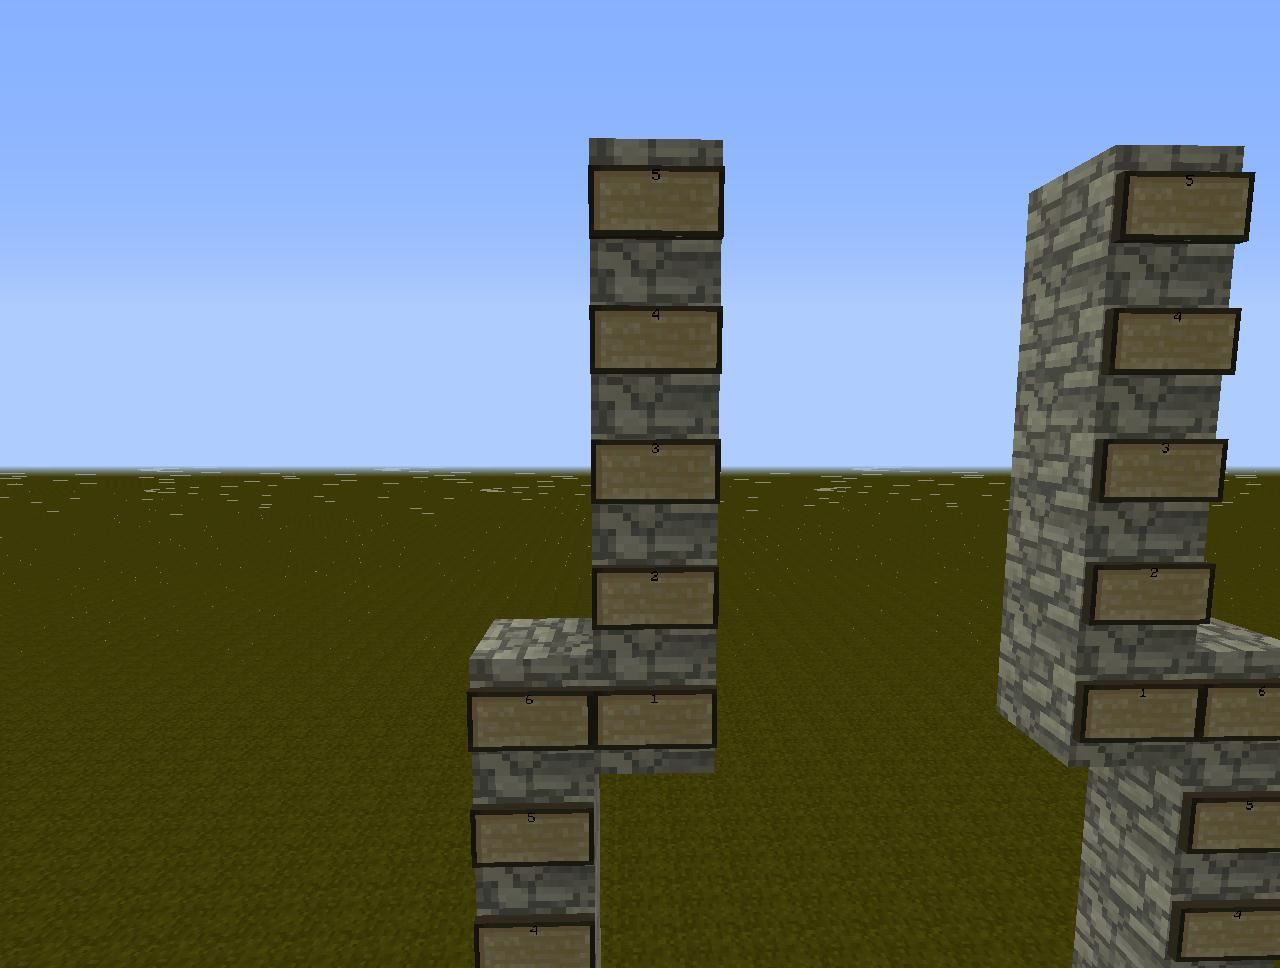 How to Make an Arched Roof in Minecraft